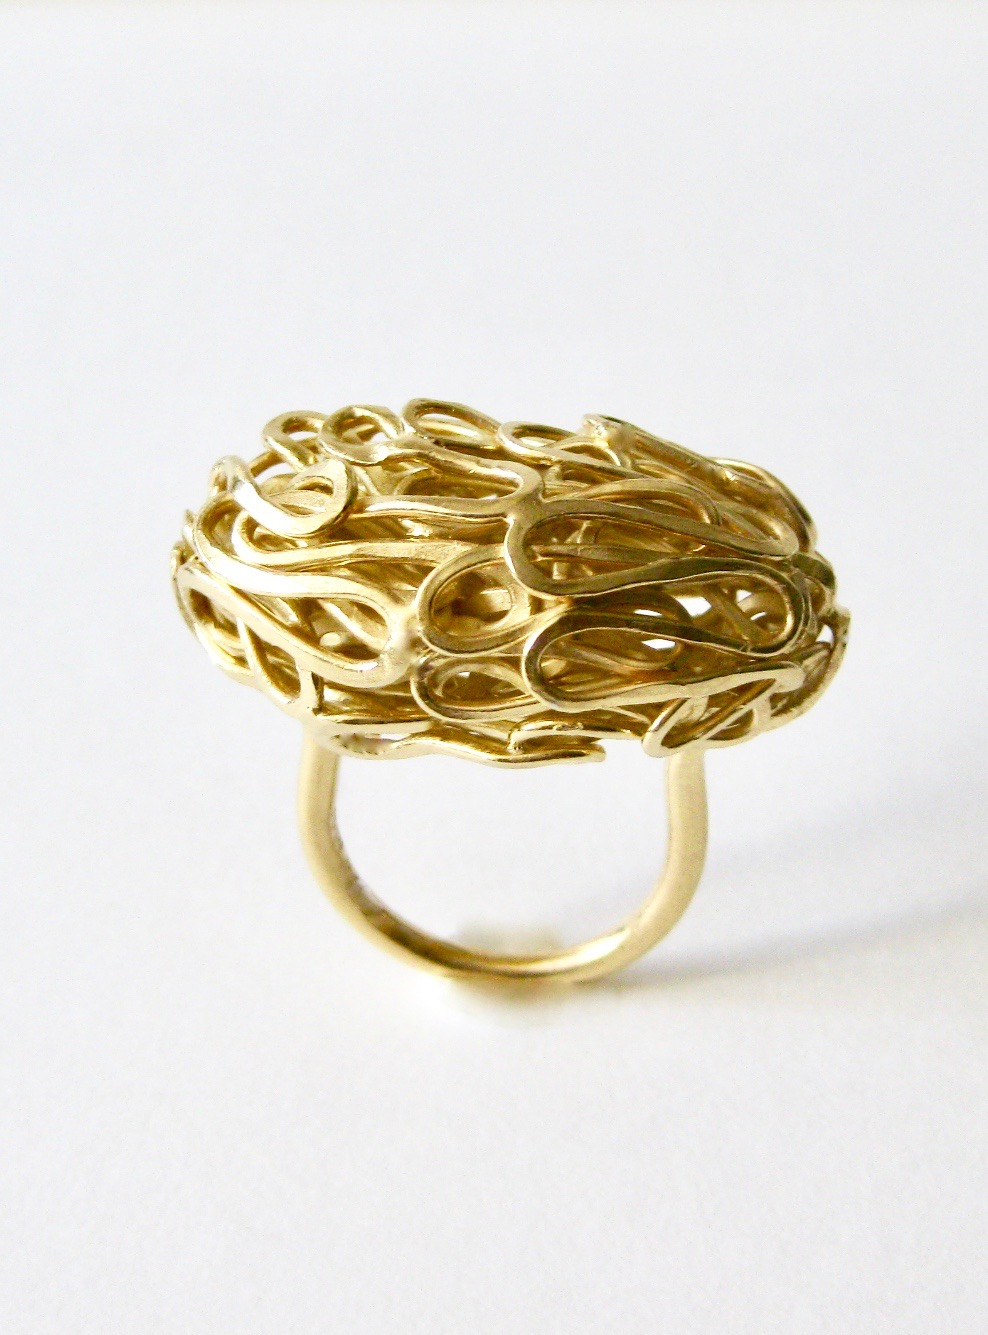 'Sculptural Form Woven Ring' 2018, Gold plated Sterling Silver